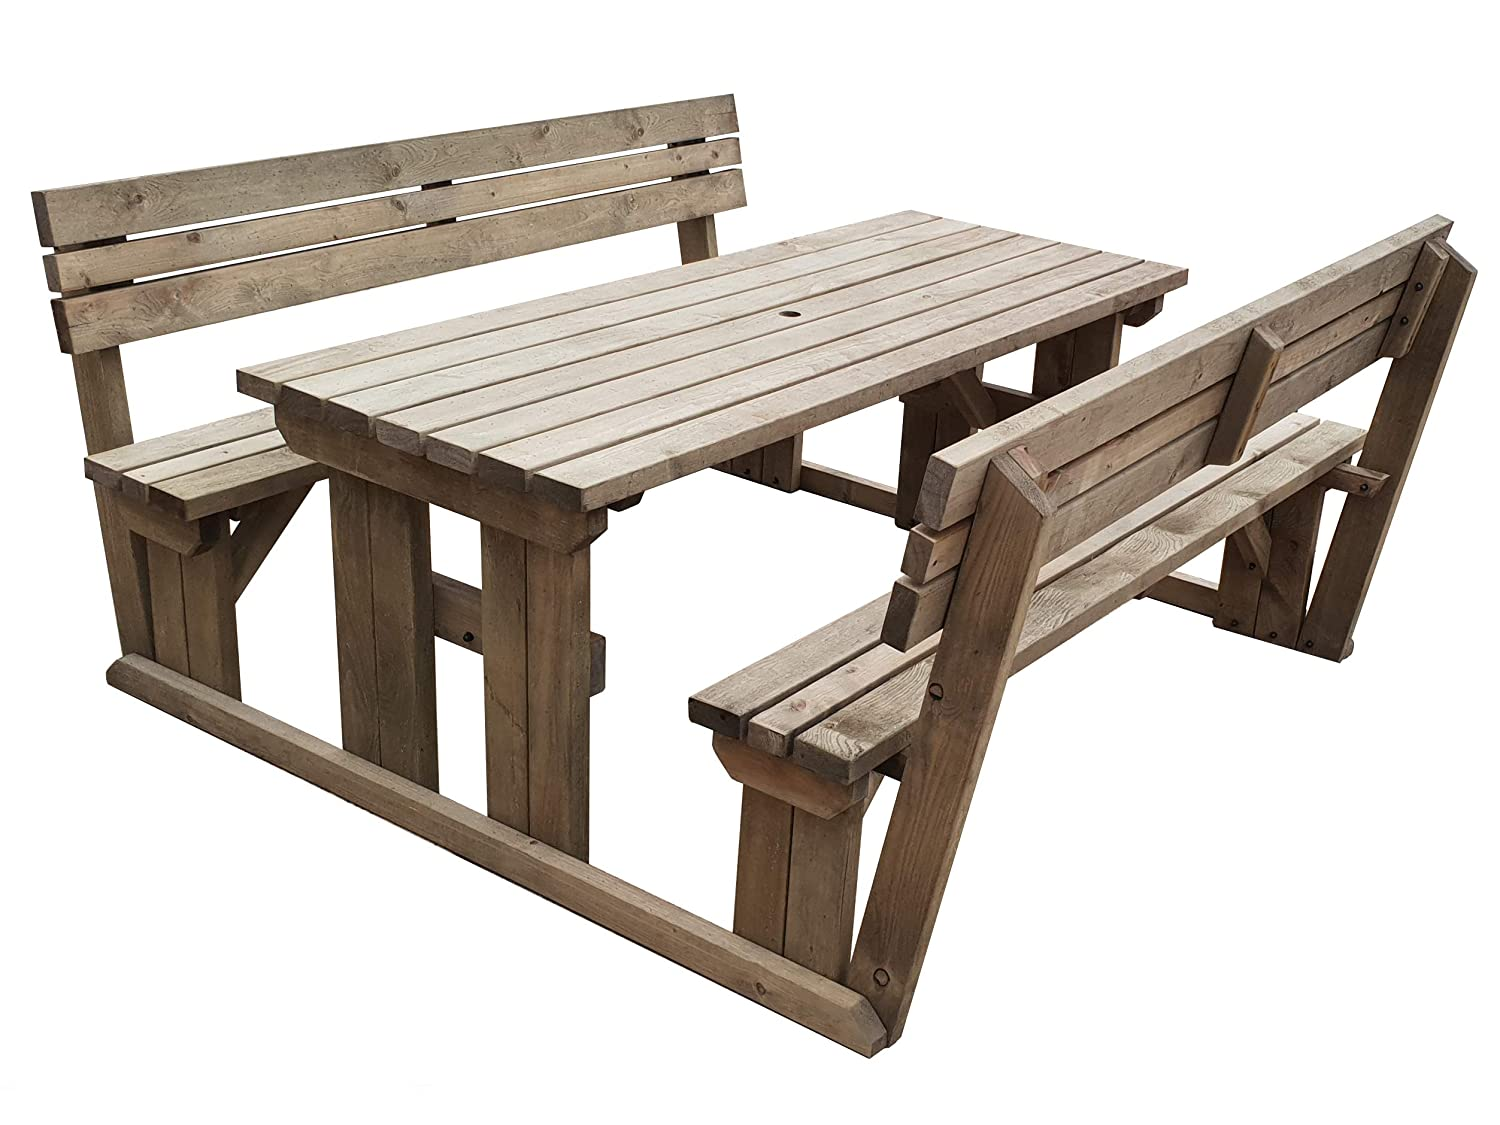 Alders Wooden Garden Picnic Table And Benches With Back Rest